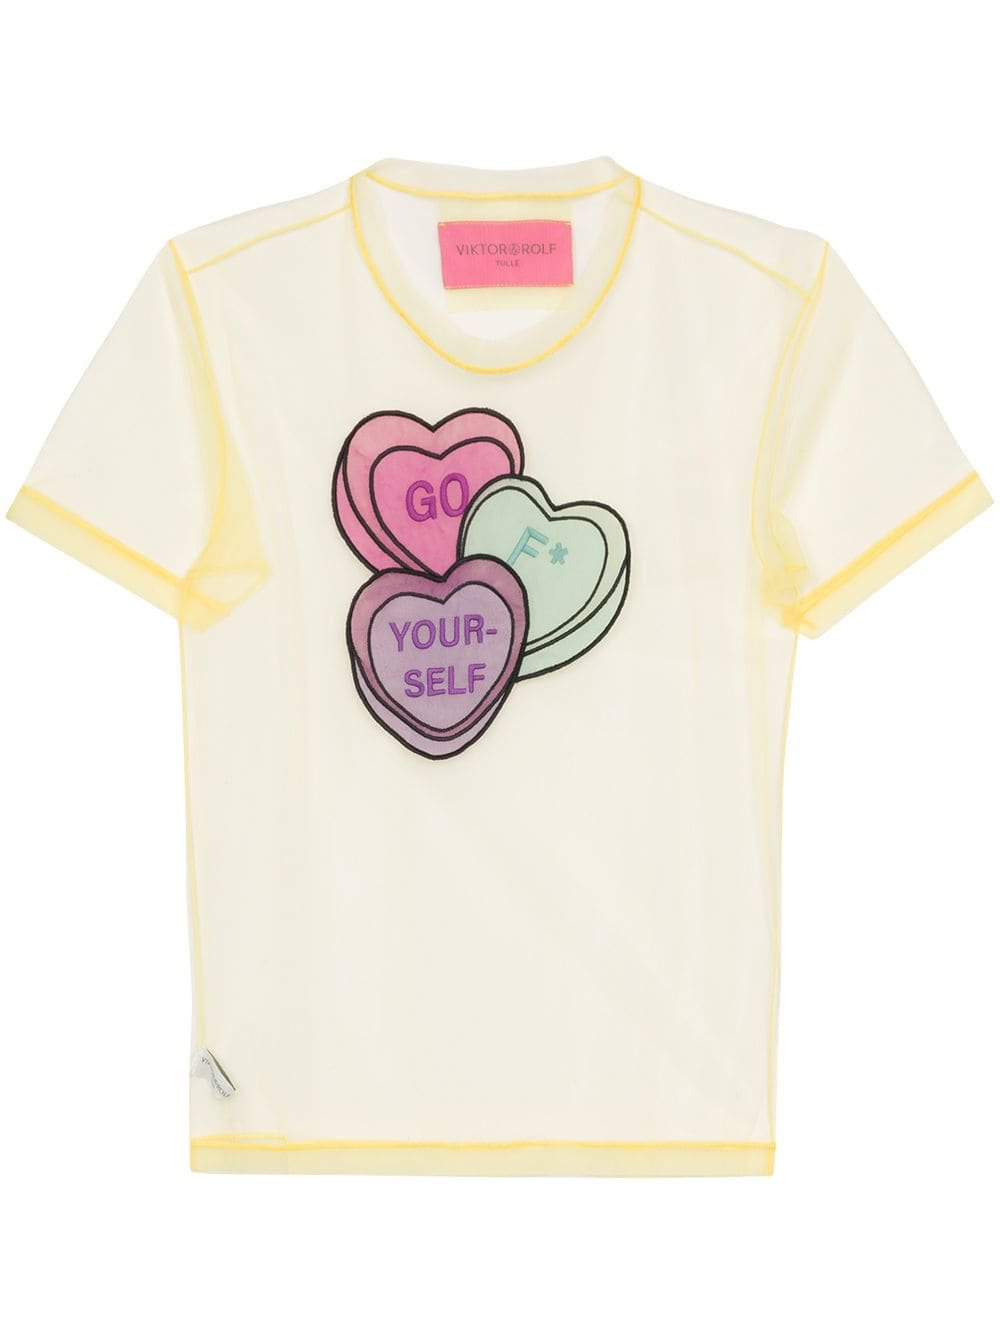 Viktor & Rolf Lovehearts-embroidered Tulle T-shirt | Farfetch.com